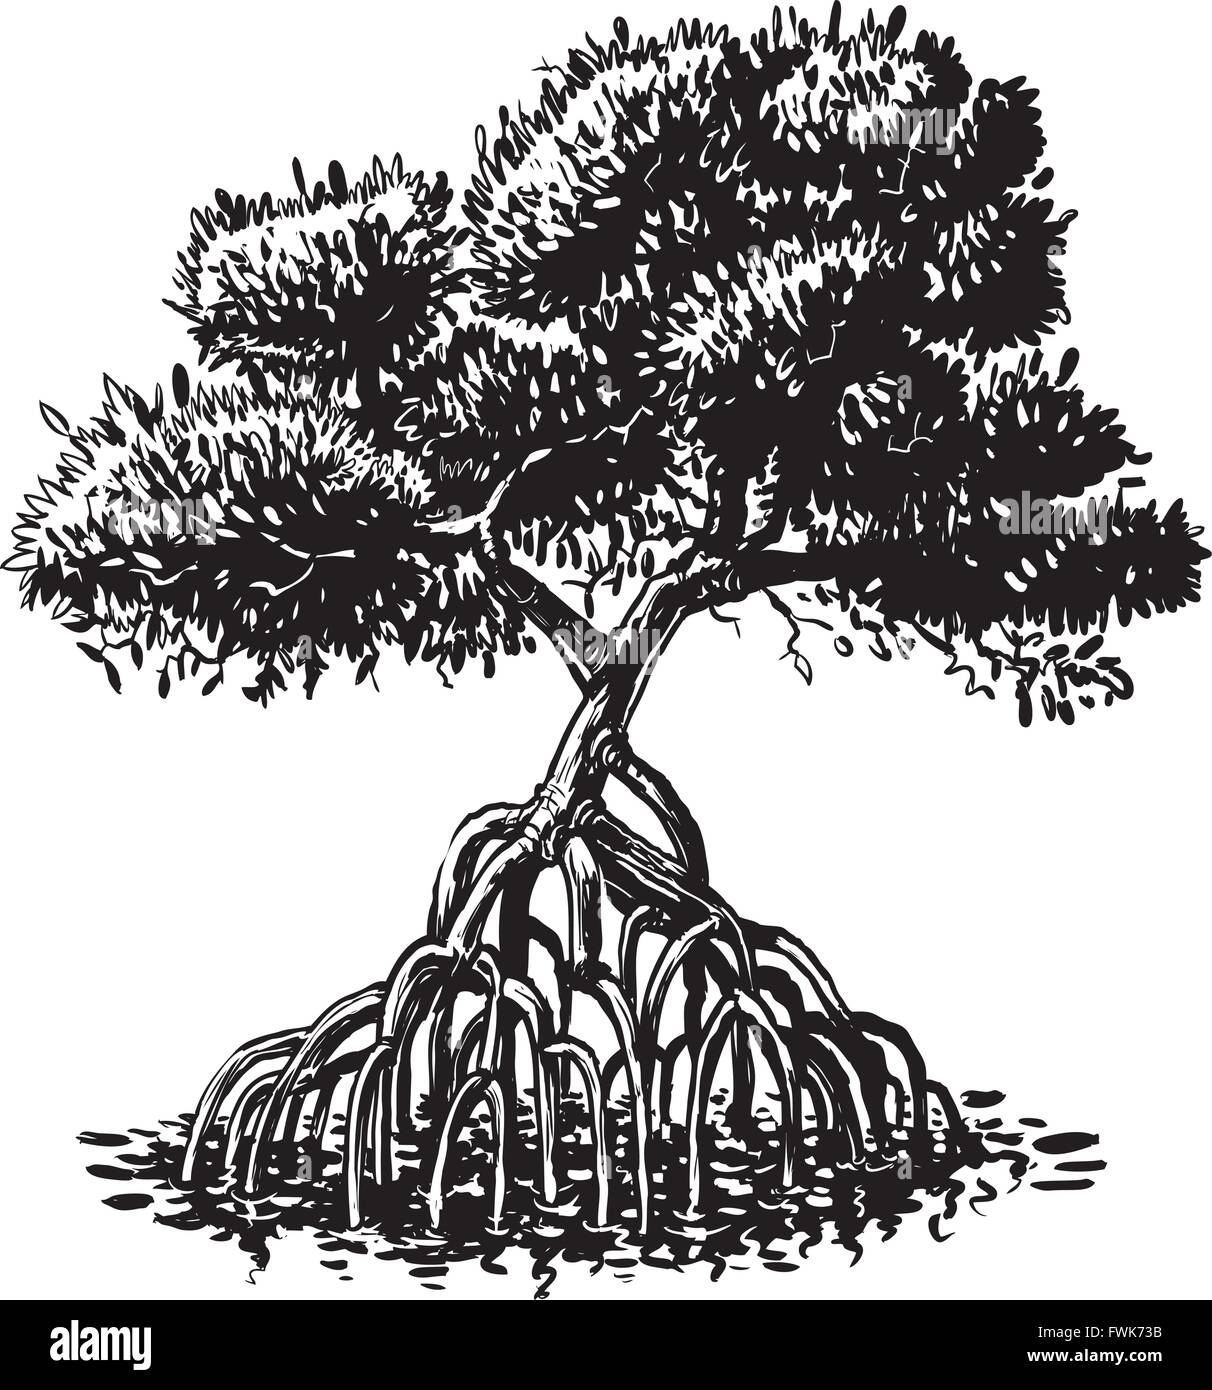 Vector cartoon clip art illustration of a black and white or monochromatic ink drawing of a mangrove tree. - Stock Image